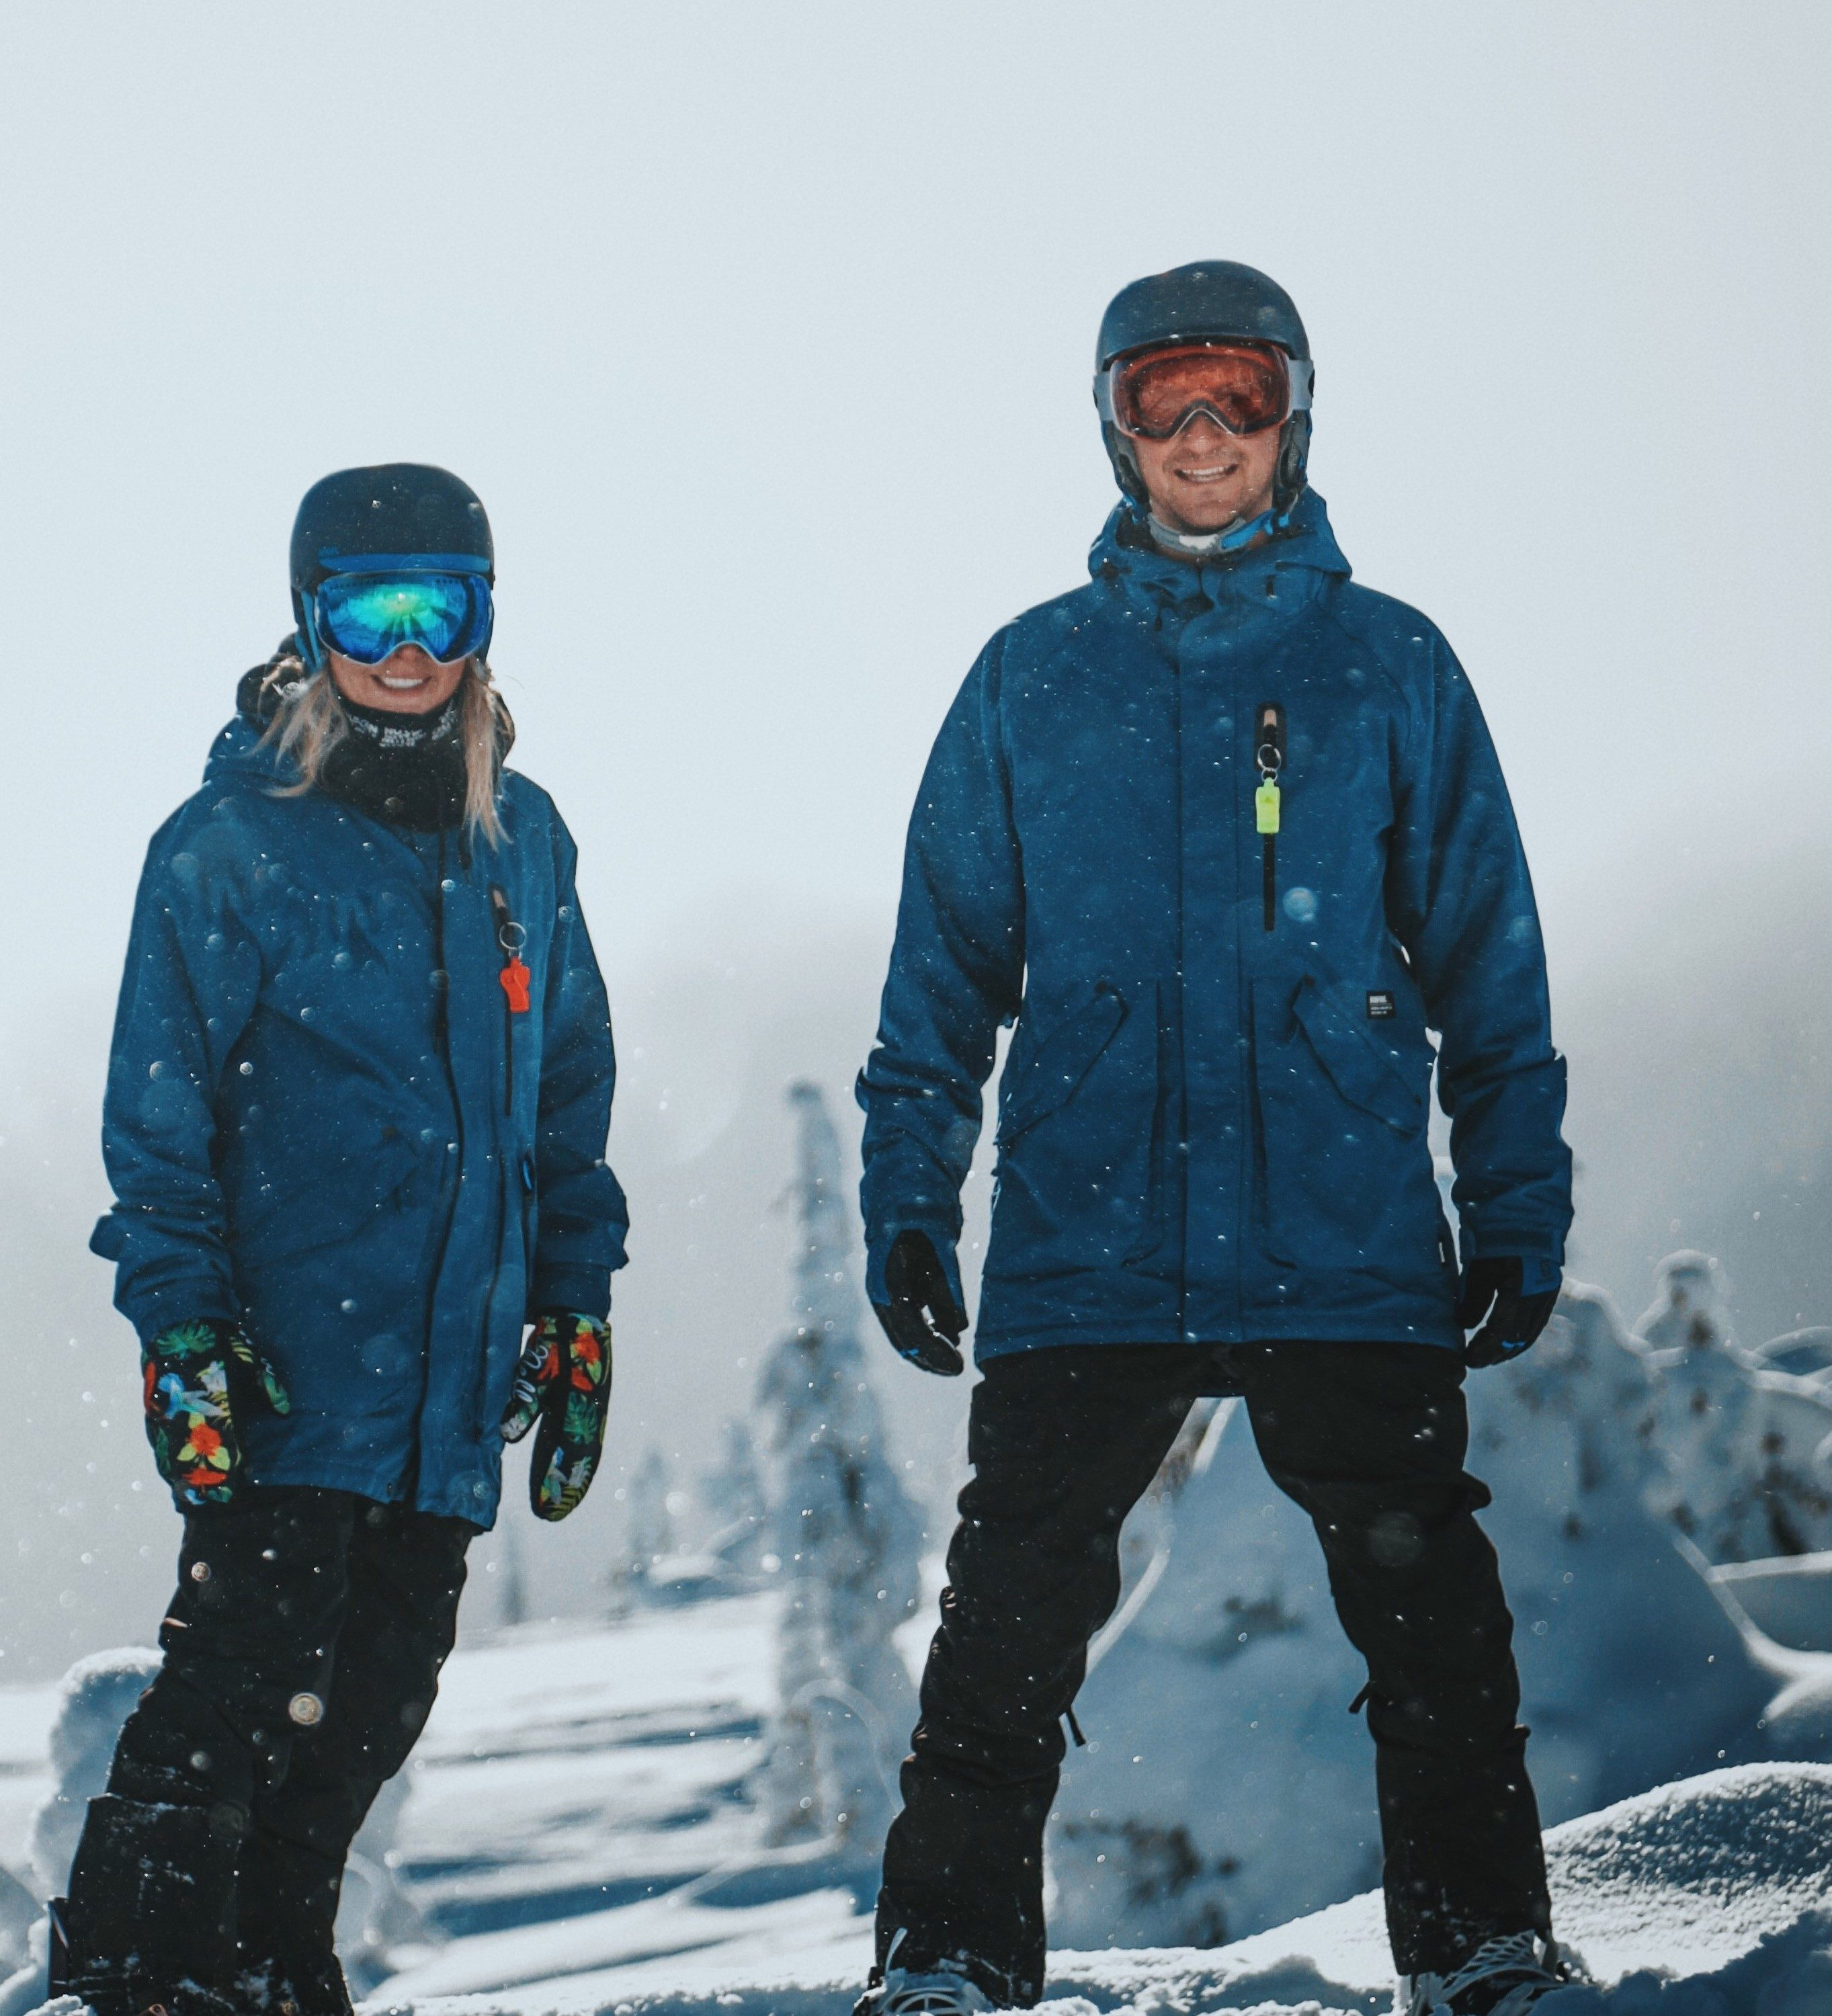 Meet New Ski le Gap Team Members, Anthony and Joey